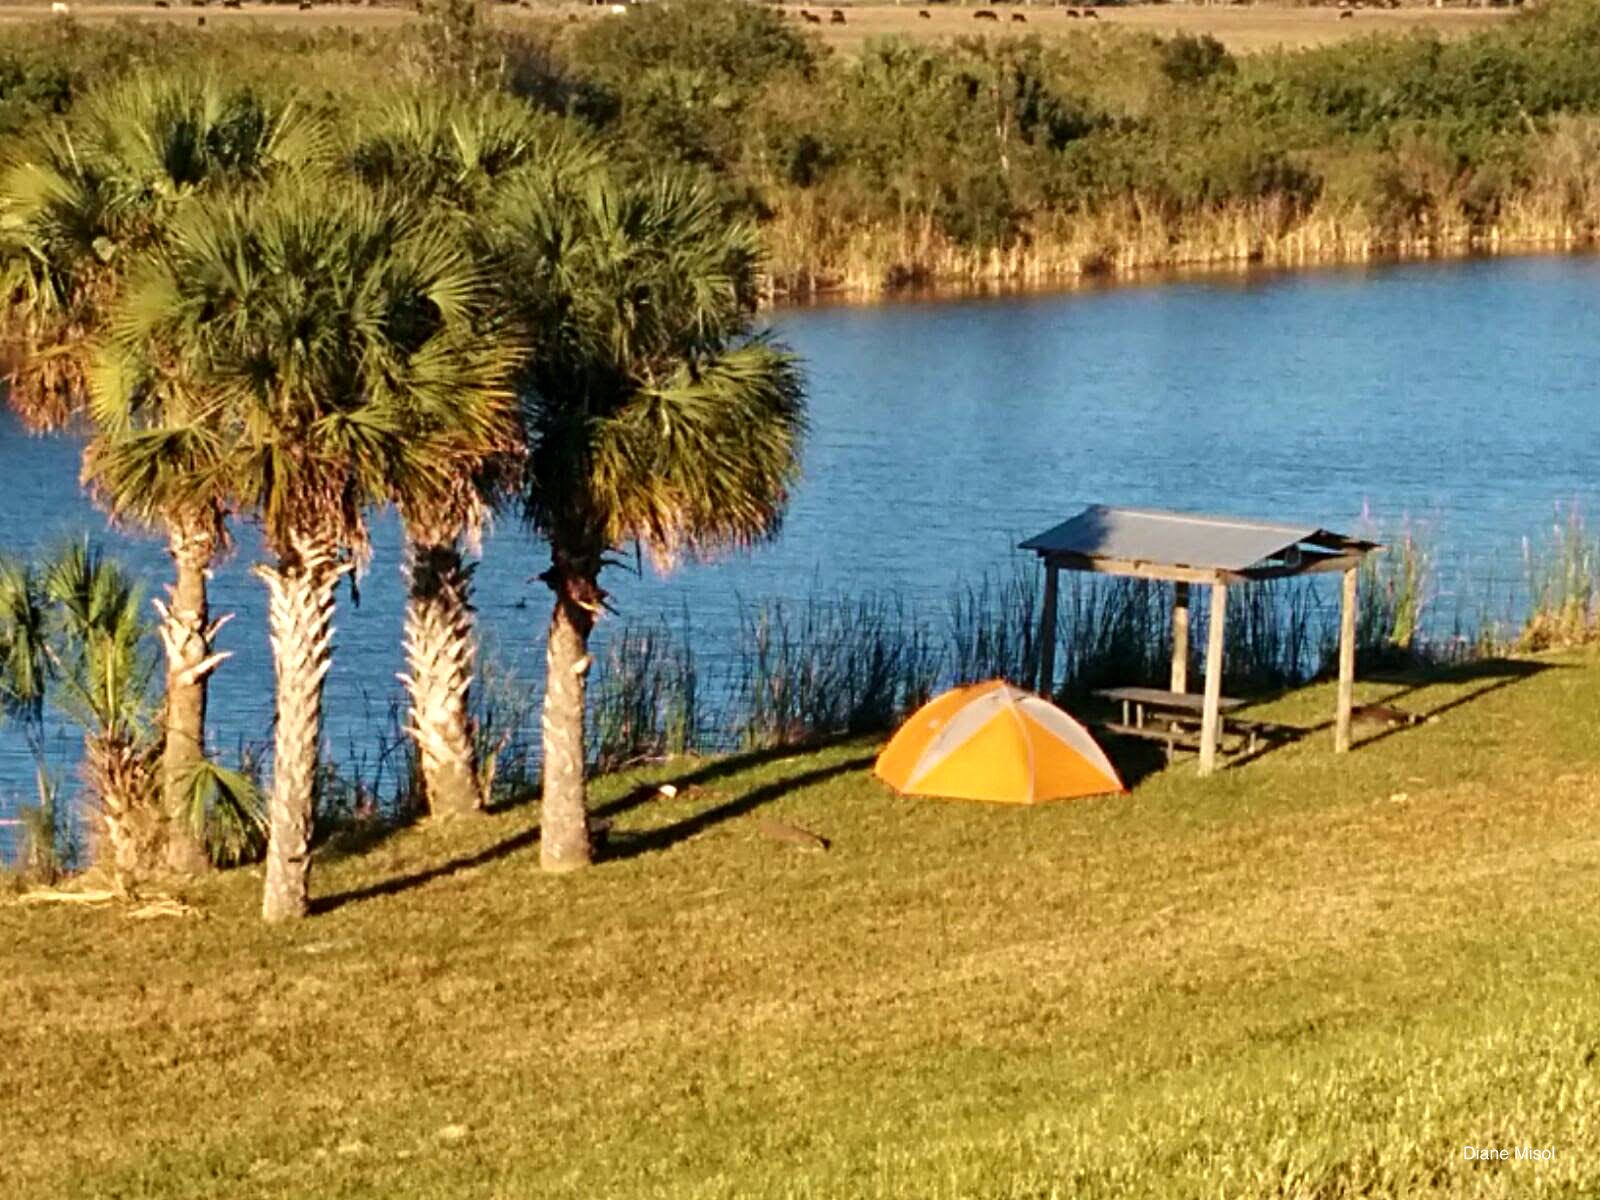 Camping along the Lake Okeechobee Scenic Trail